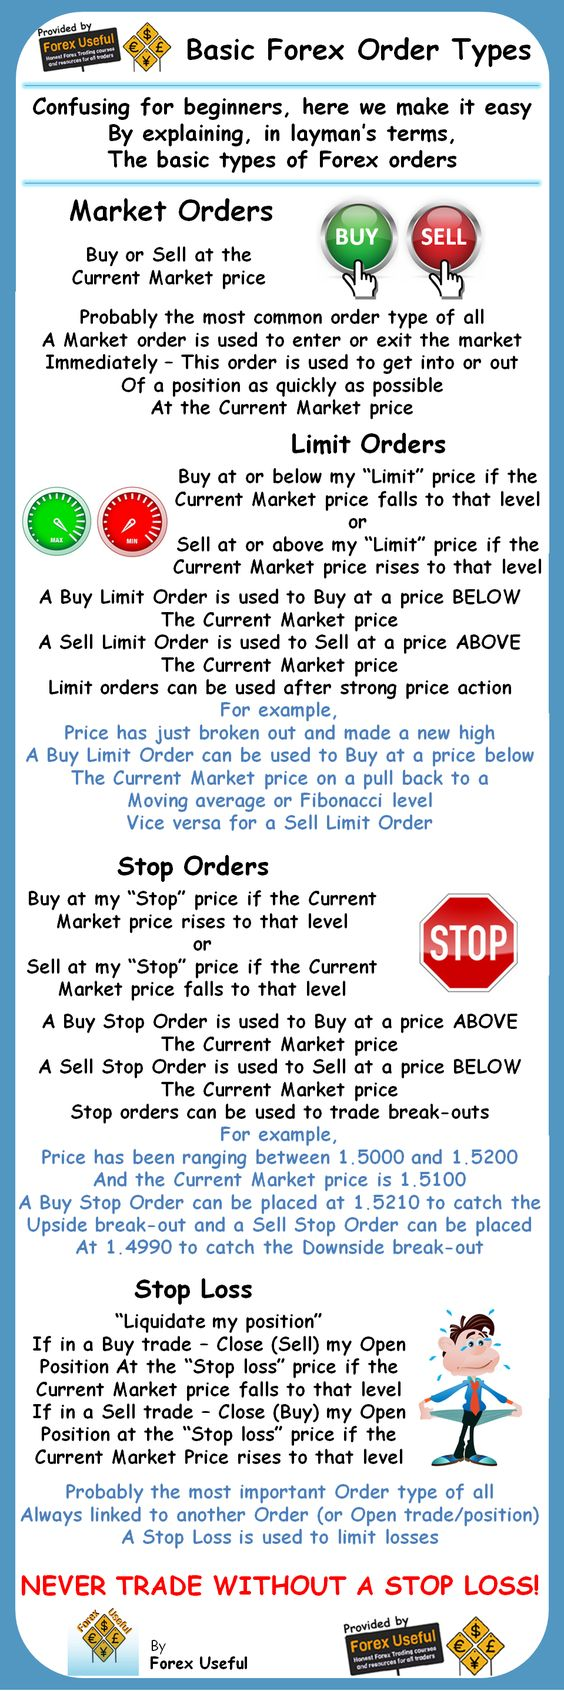 Options trading layman's terms